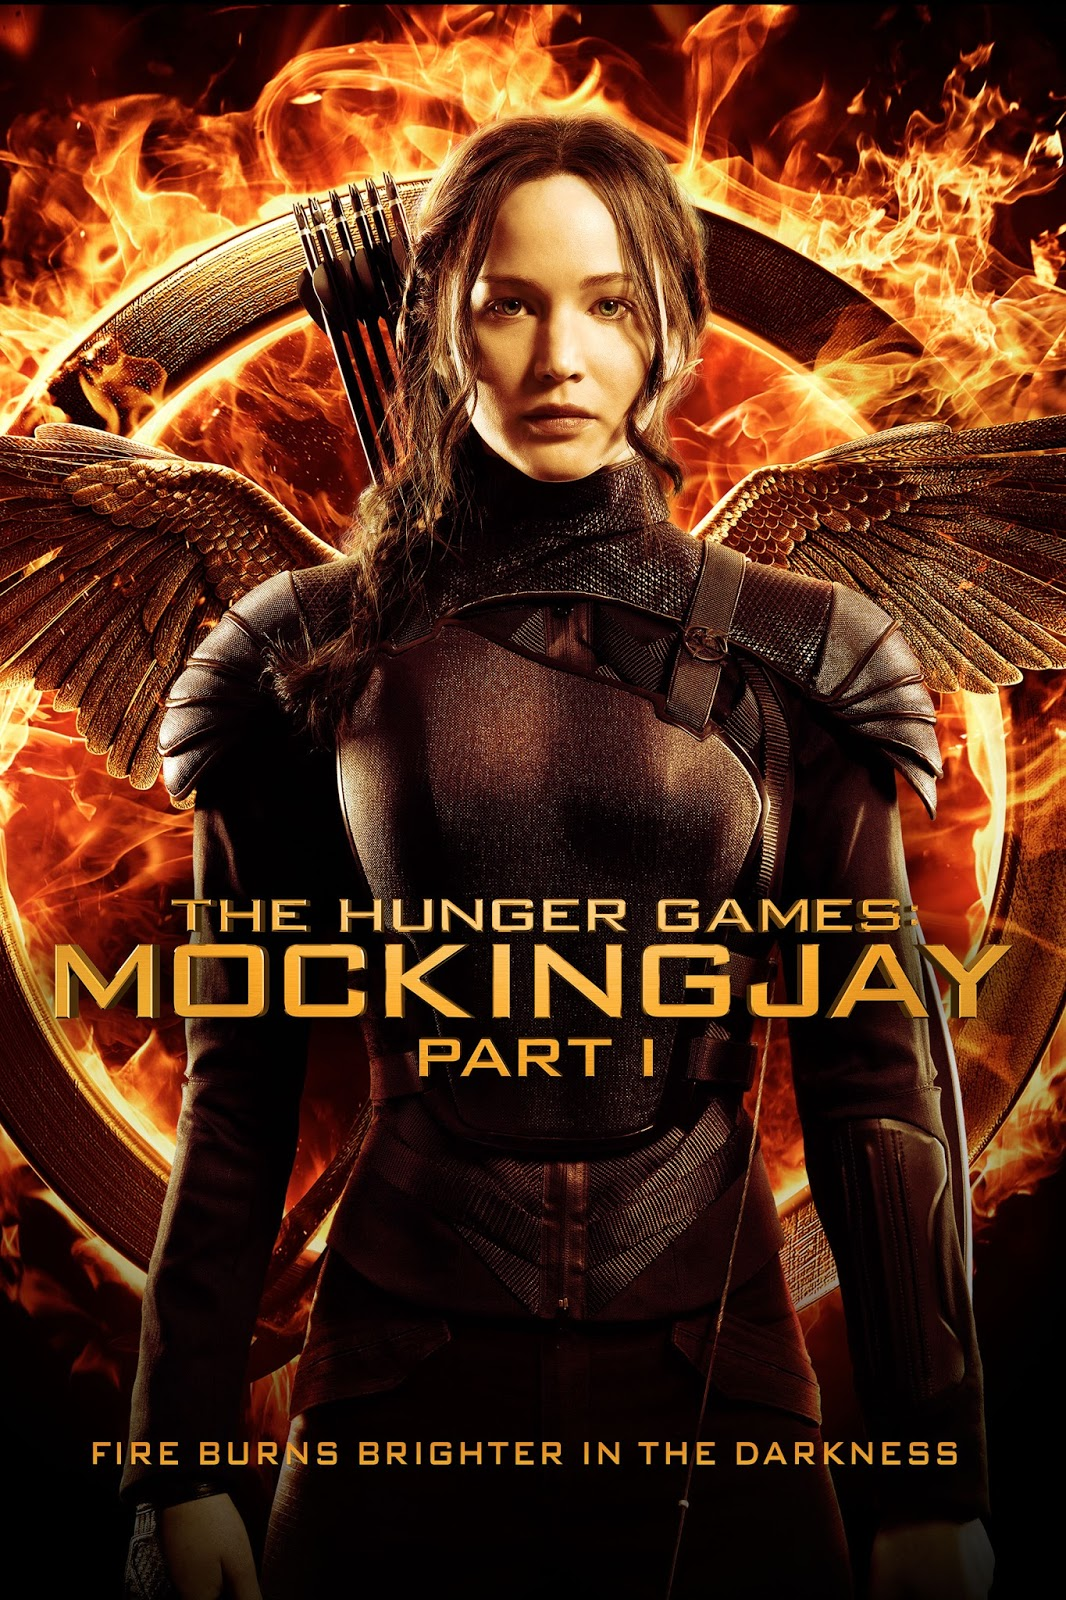 Official Final Poster For The Hunger Games Mockingjay